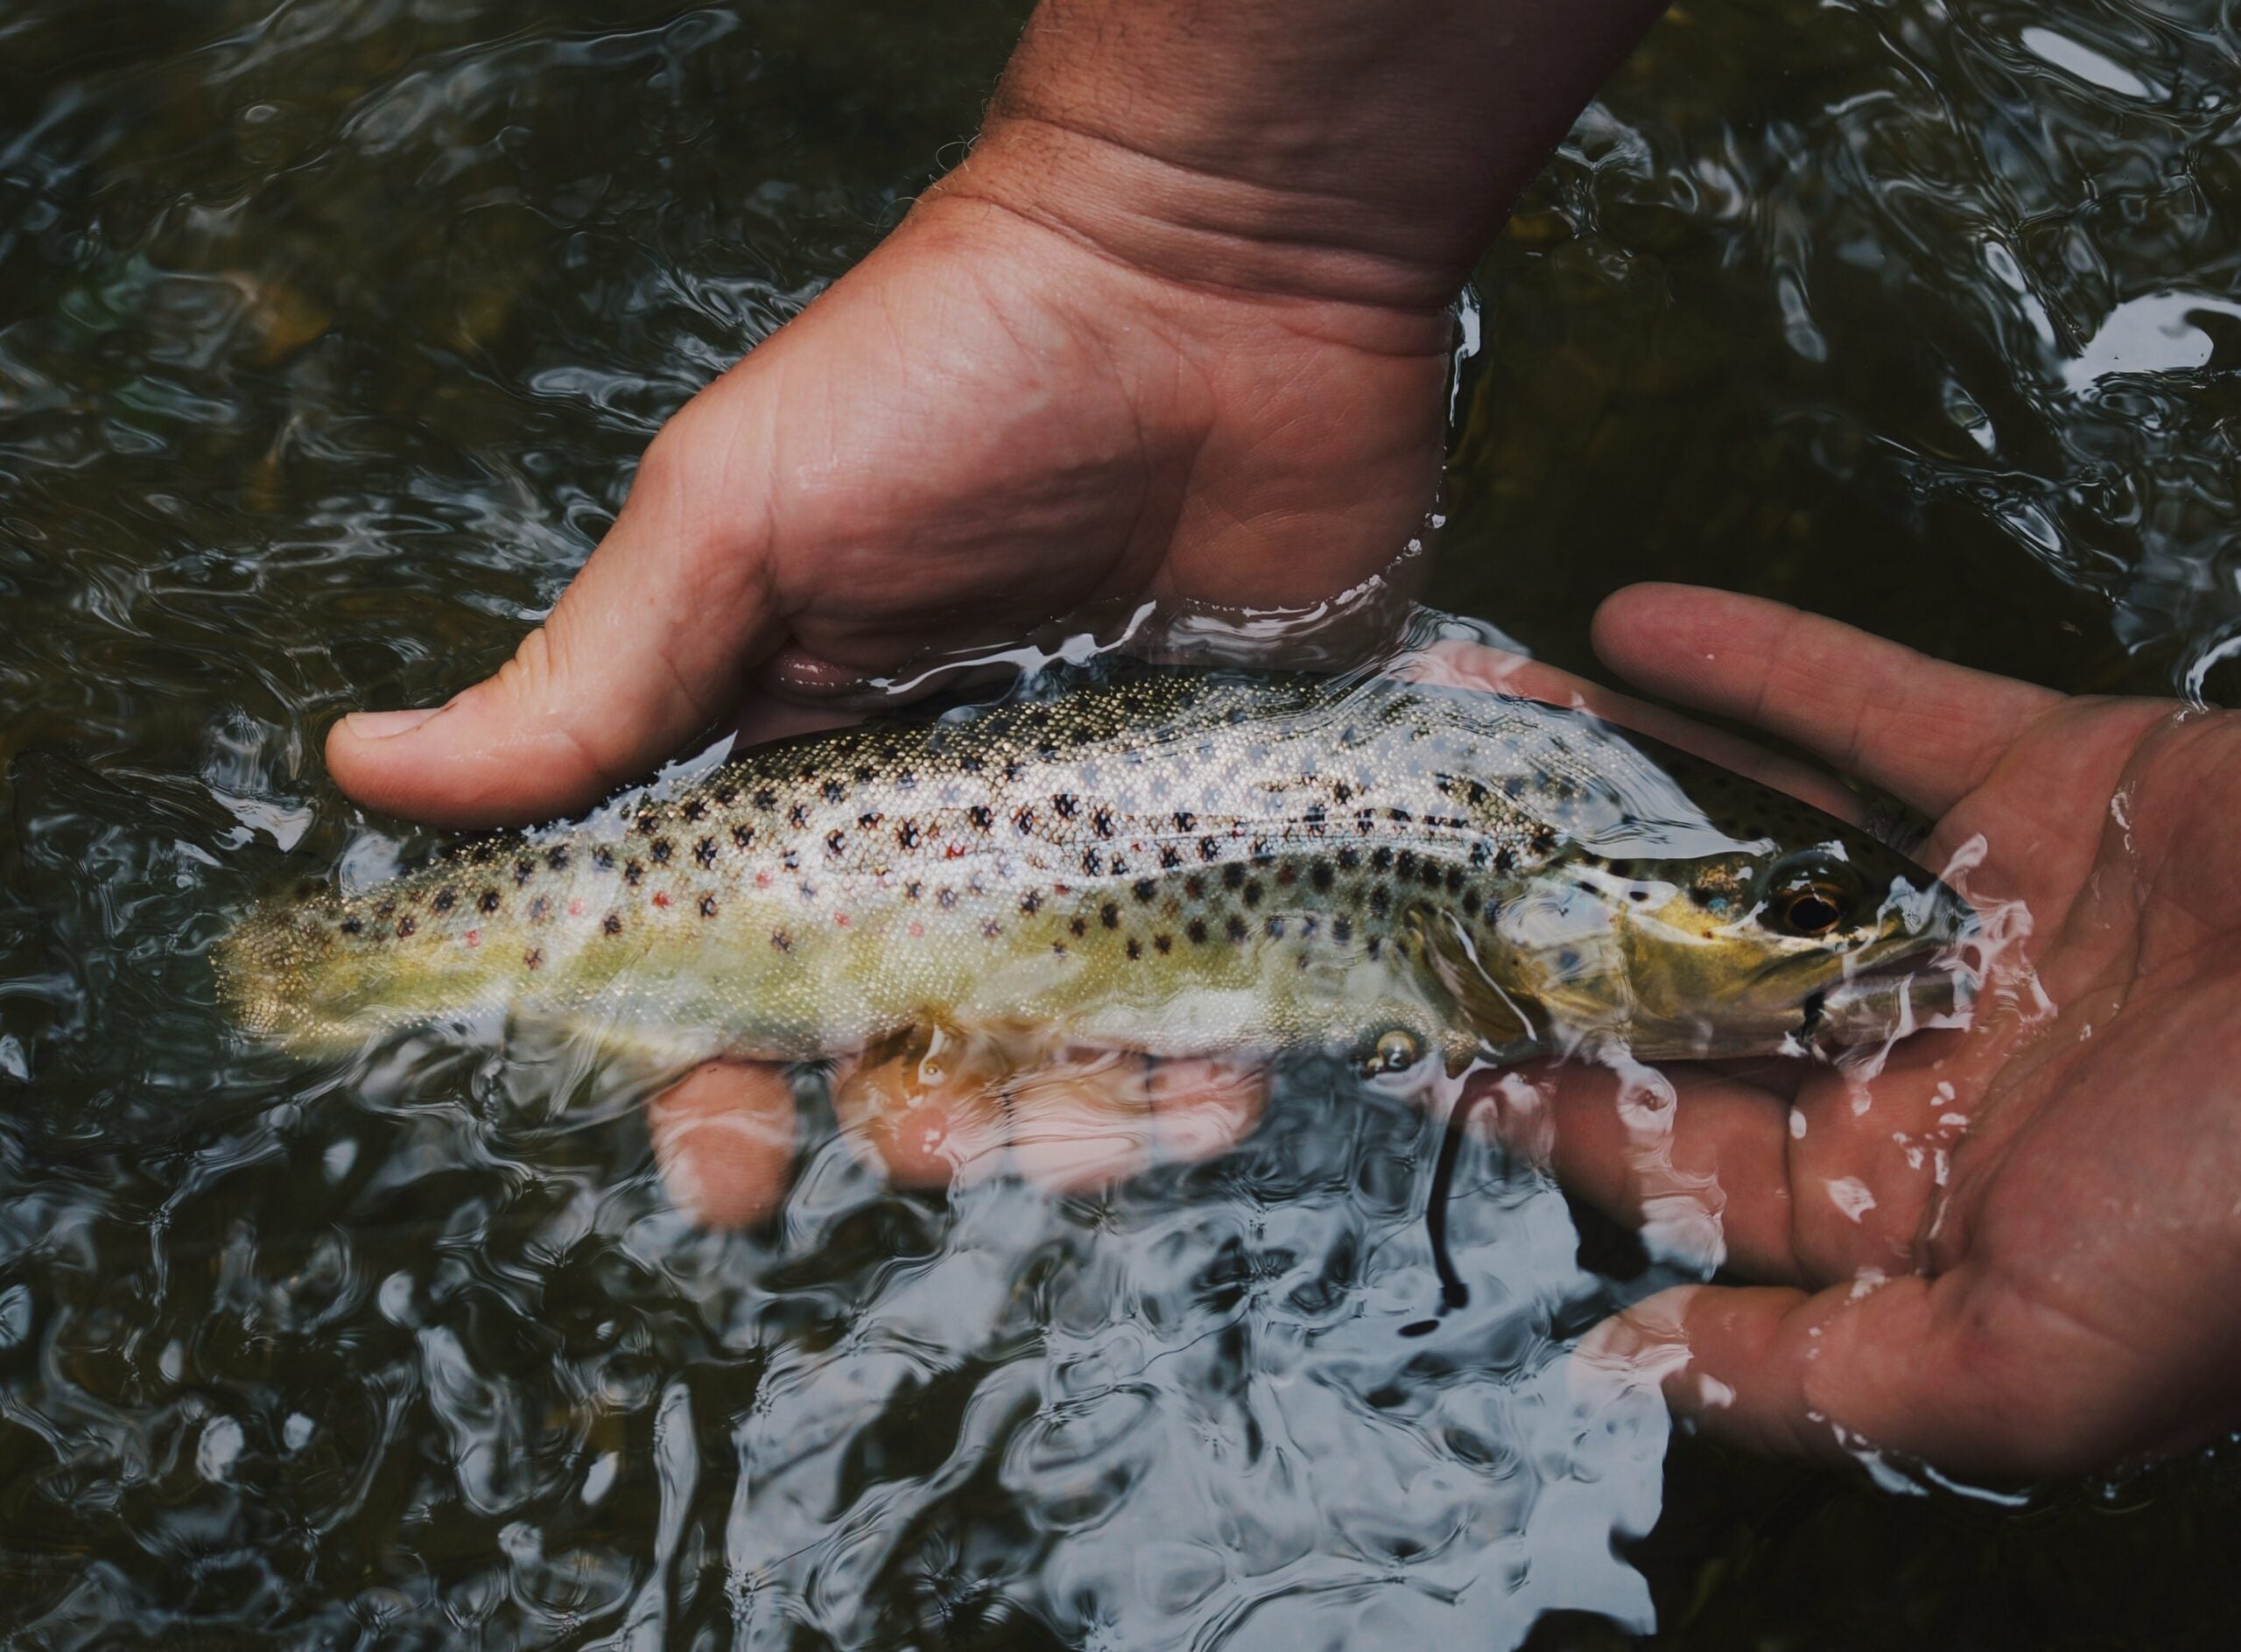 Hands holding trout underwater.